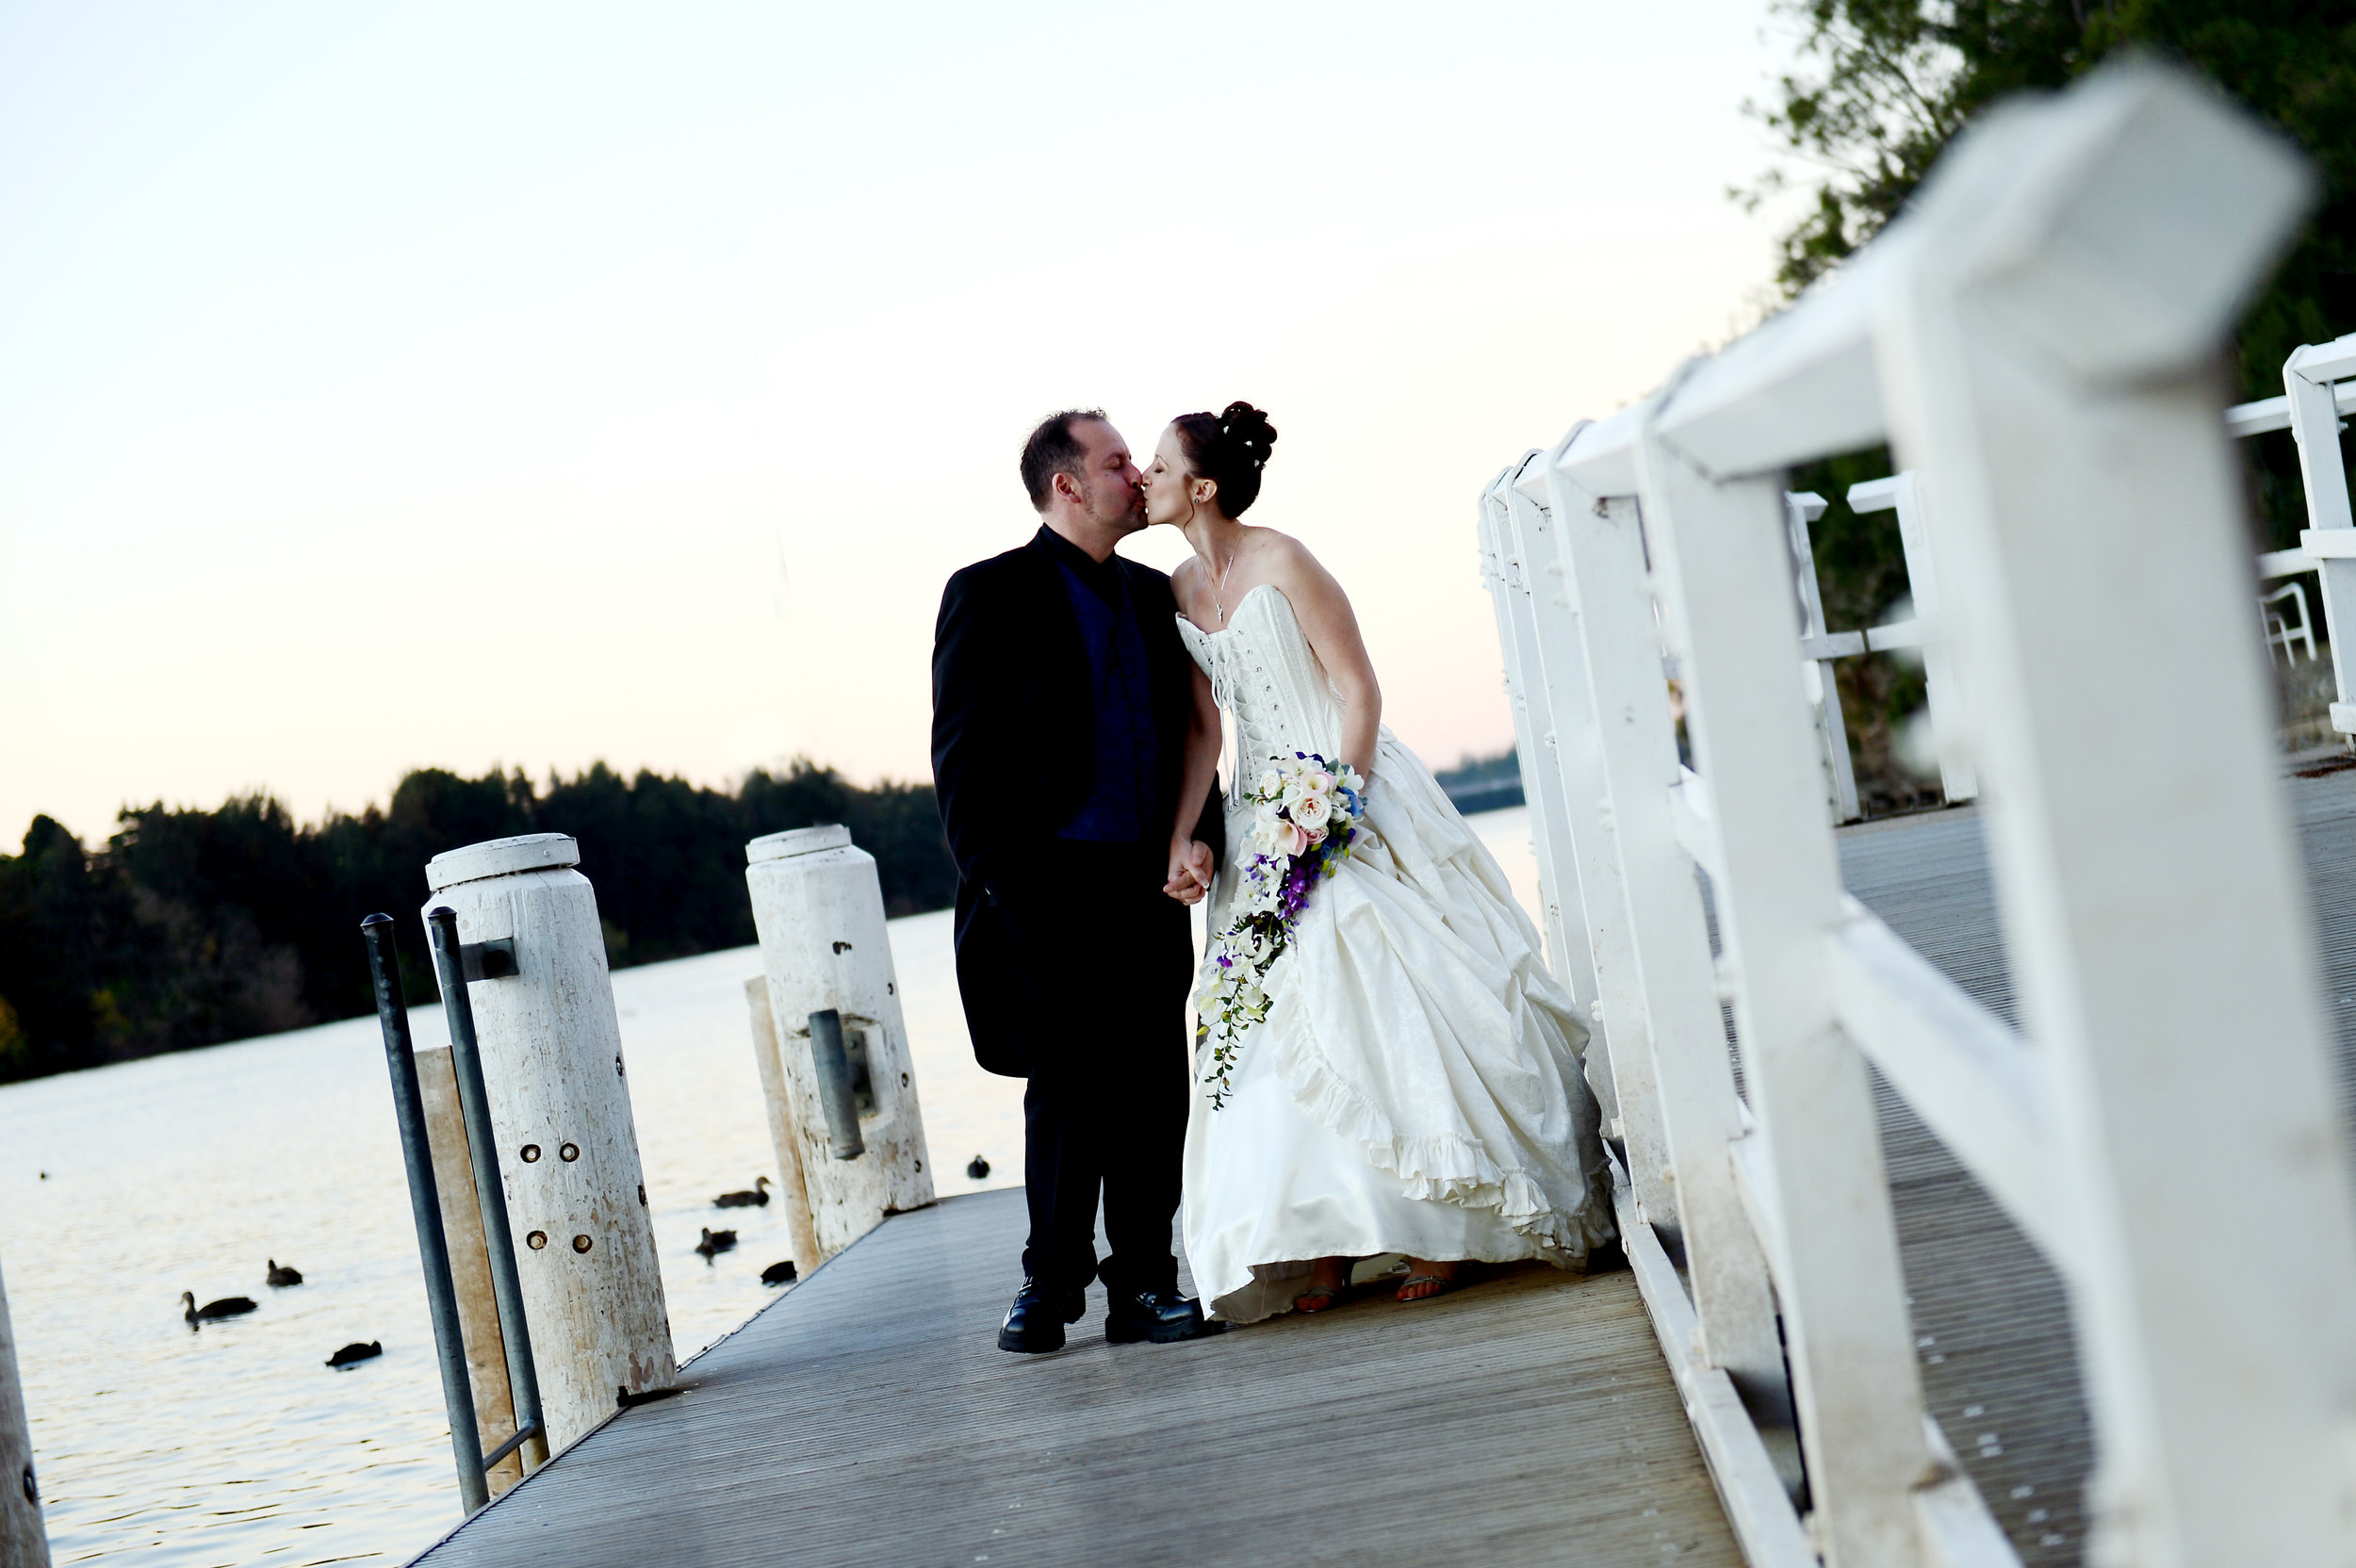 Belle wedding bride groom kiss wharf jetty river.JPG